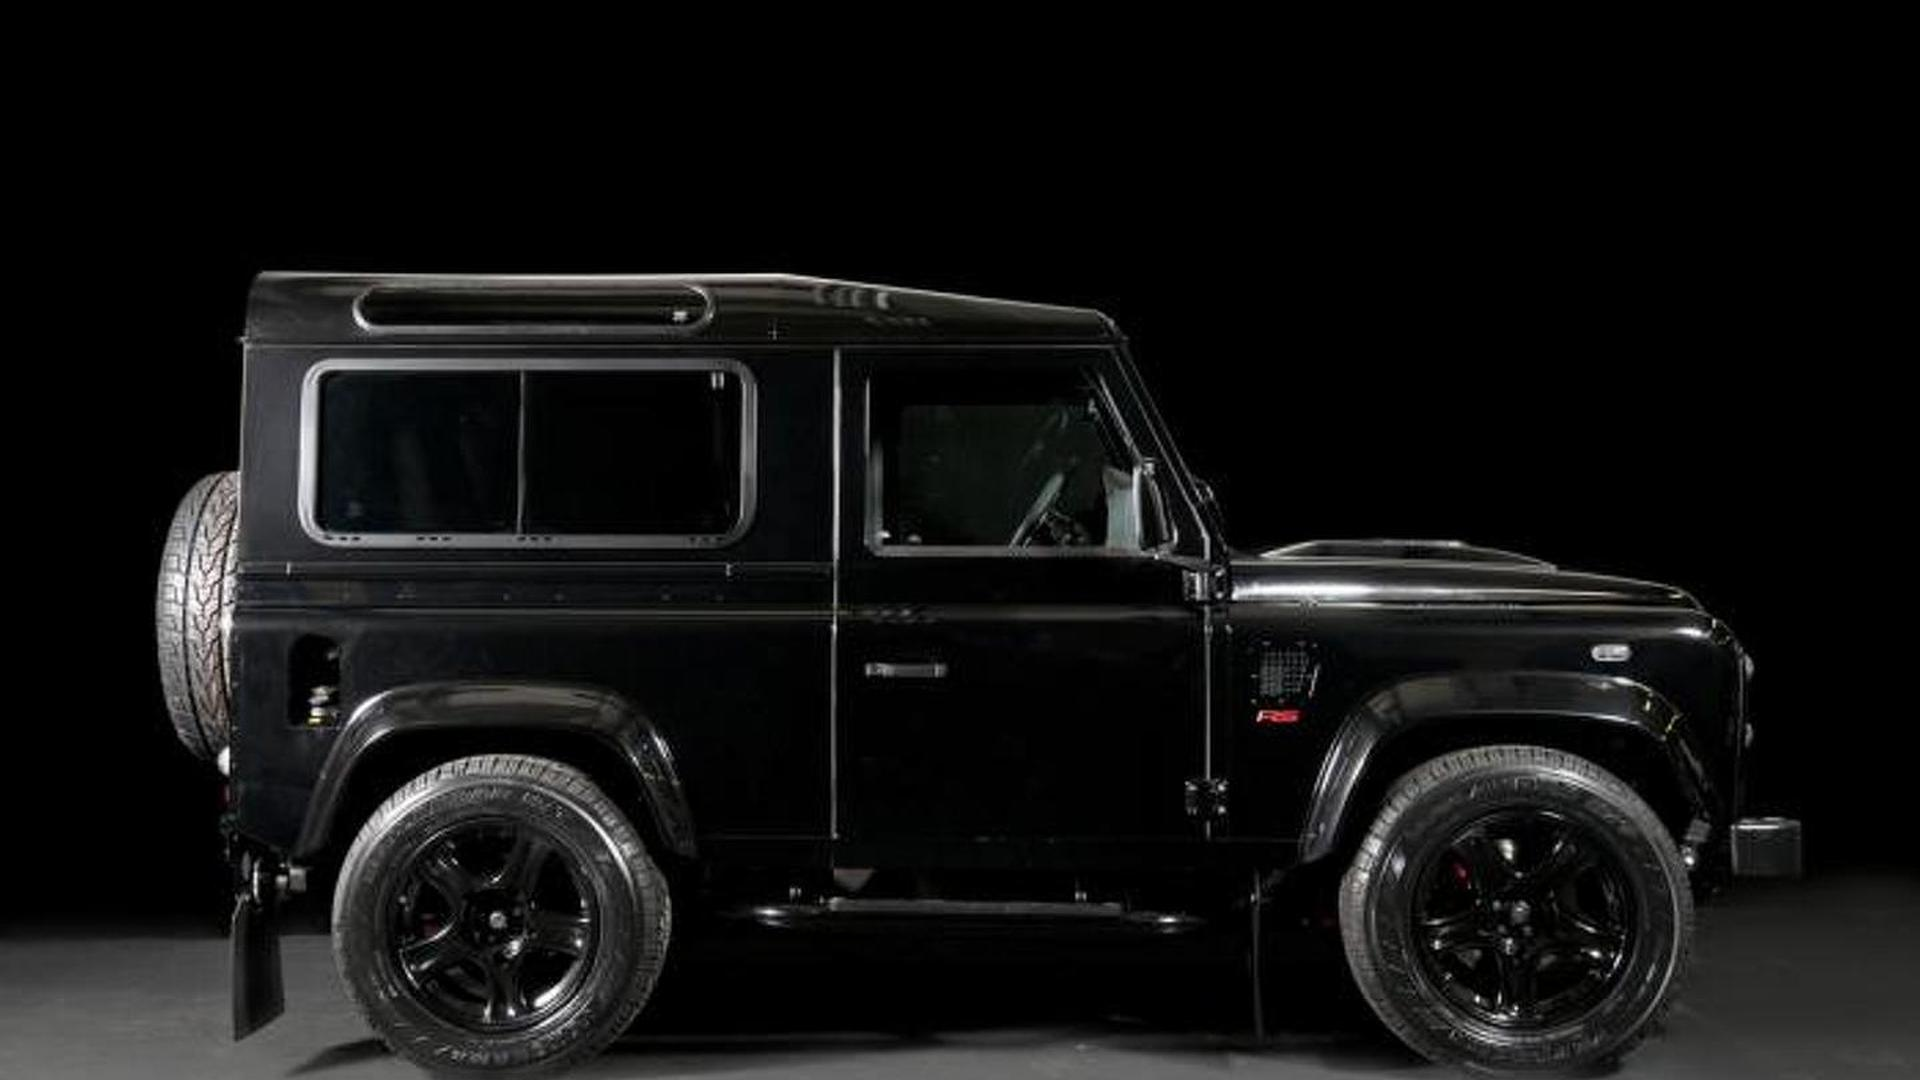 Urban Truck introduces Land Rover Defender Ultimate RS with 500 HP